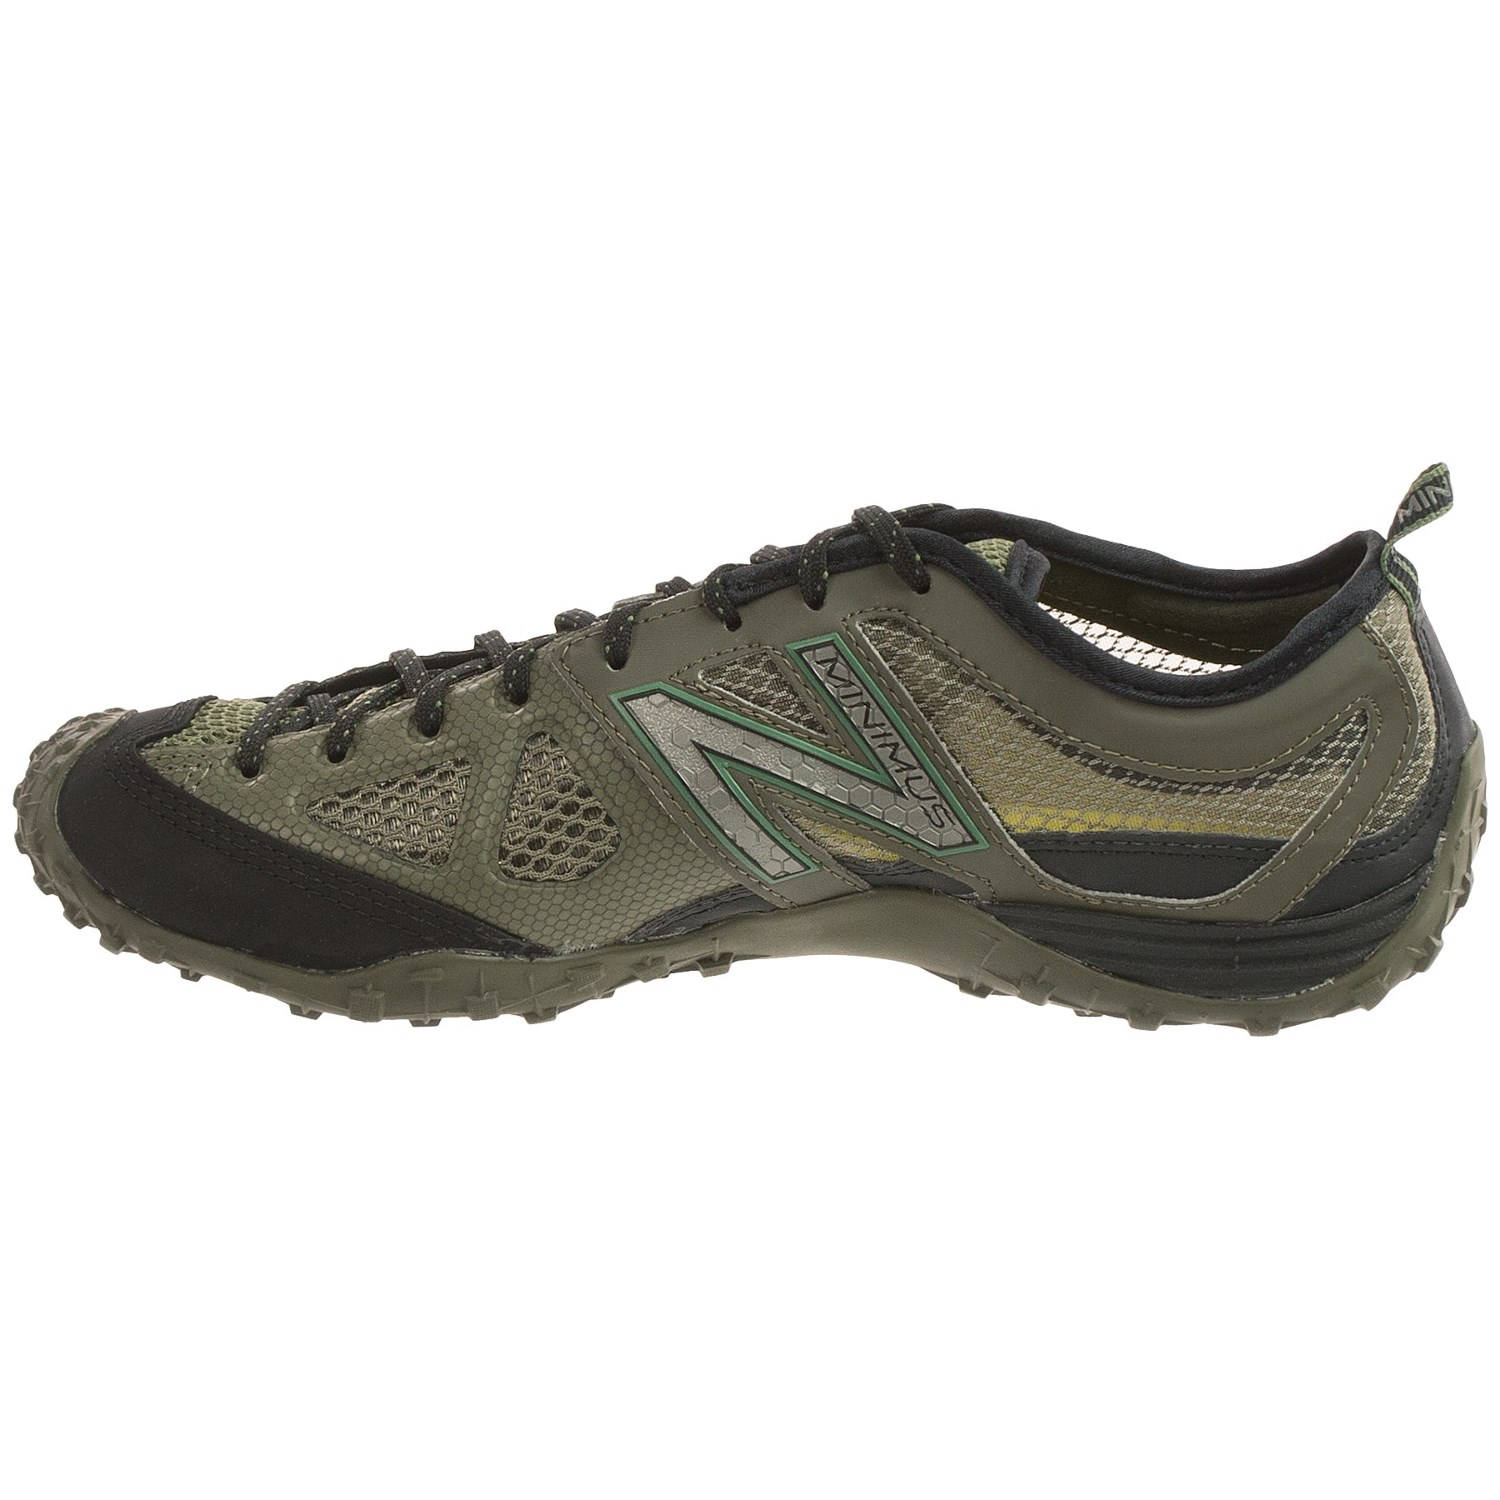 Cross Trainer Shoe Reviews